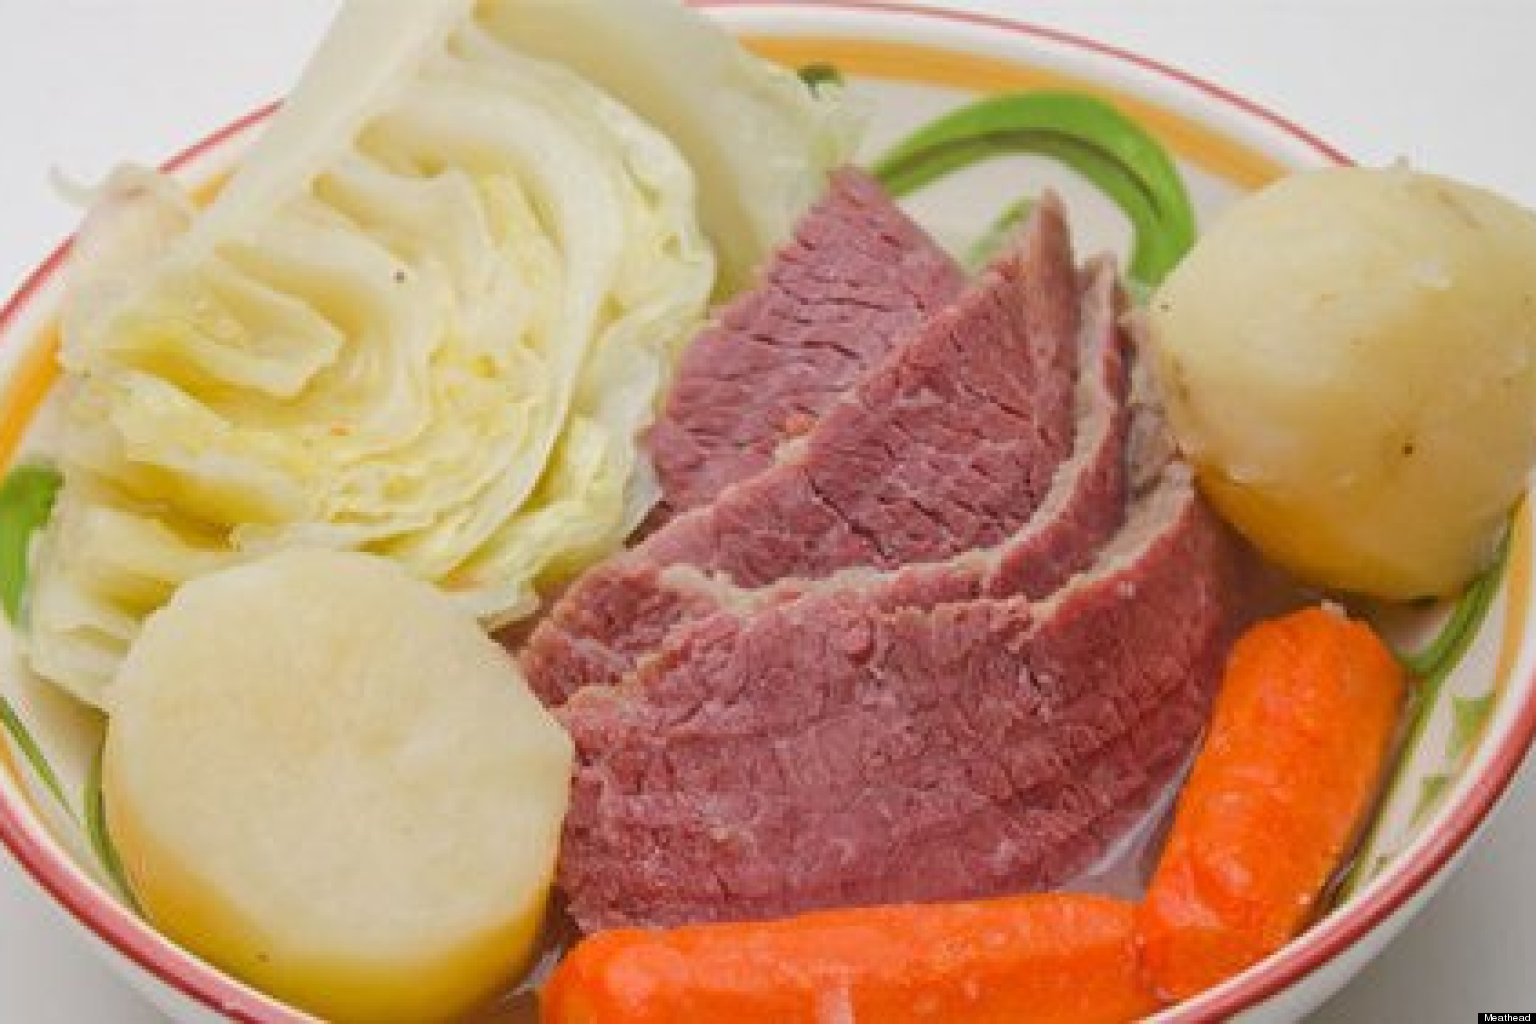 Corned Beef And Cabbage: Let's Do It Right! | The Huffington Post